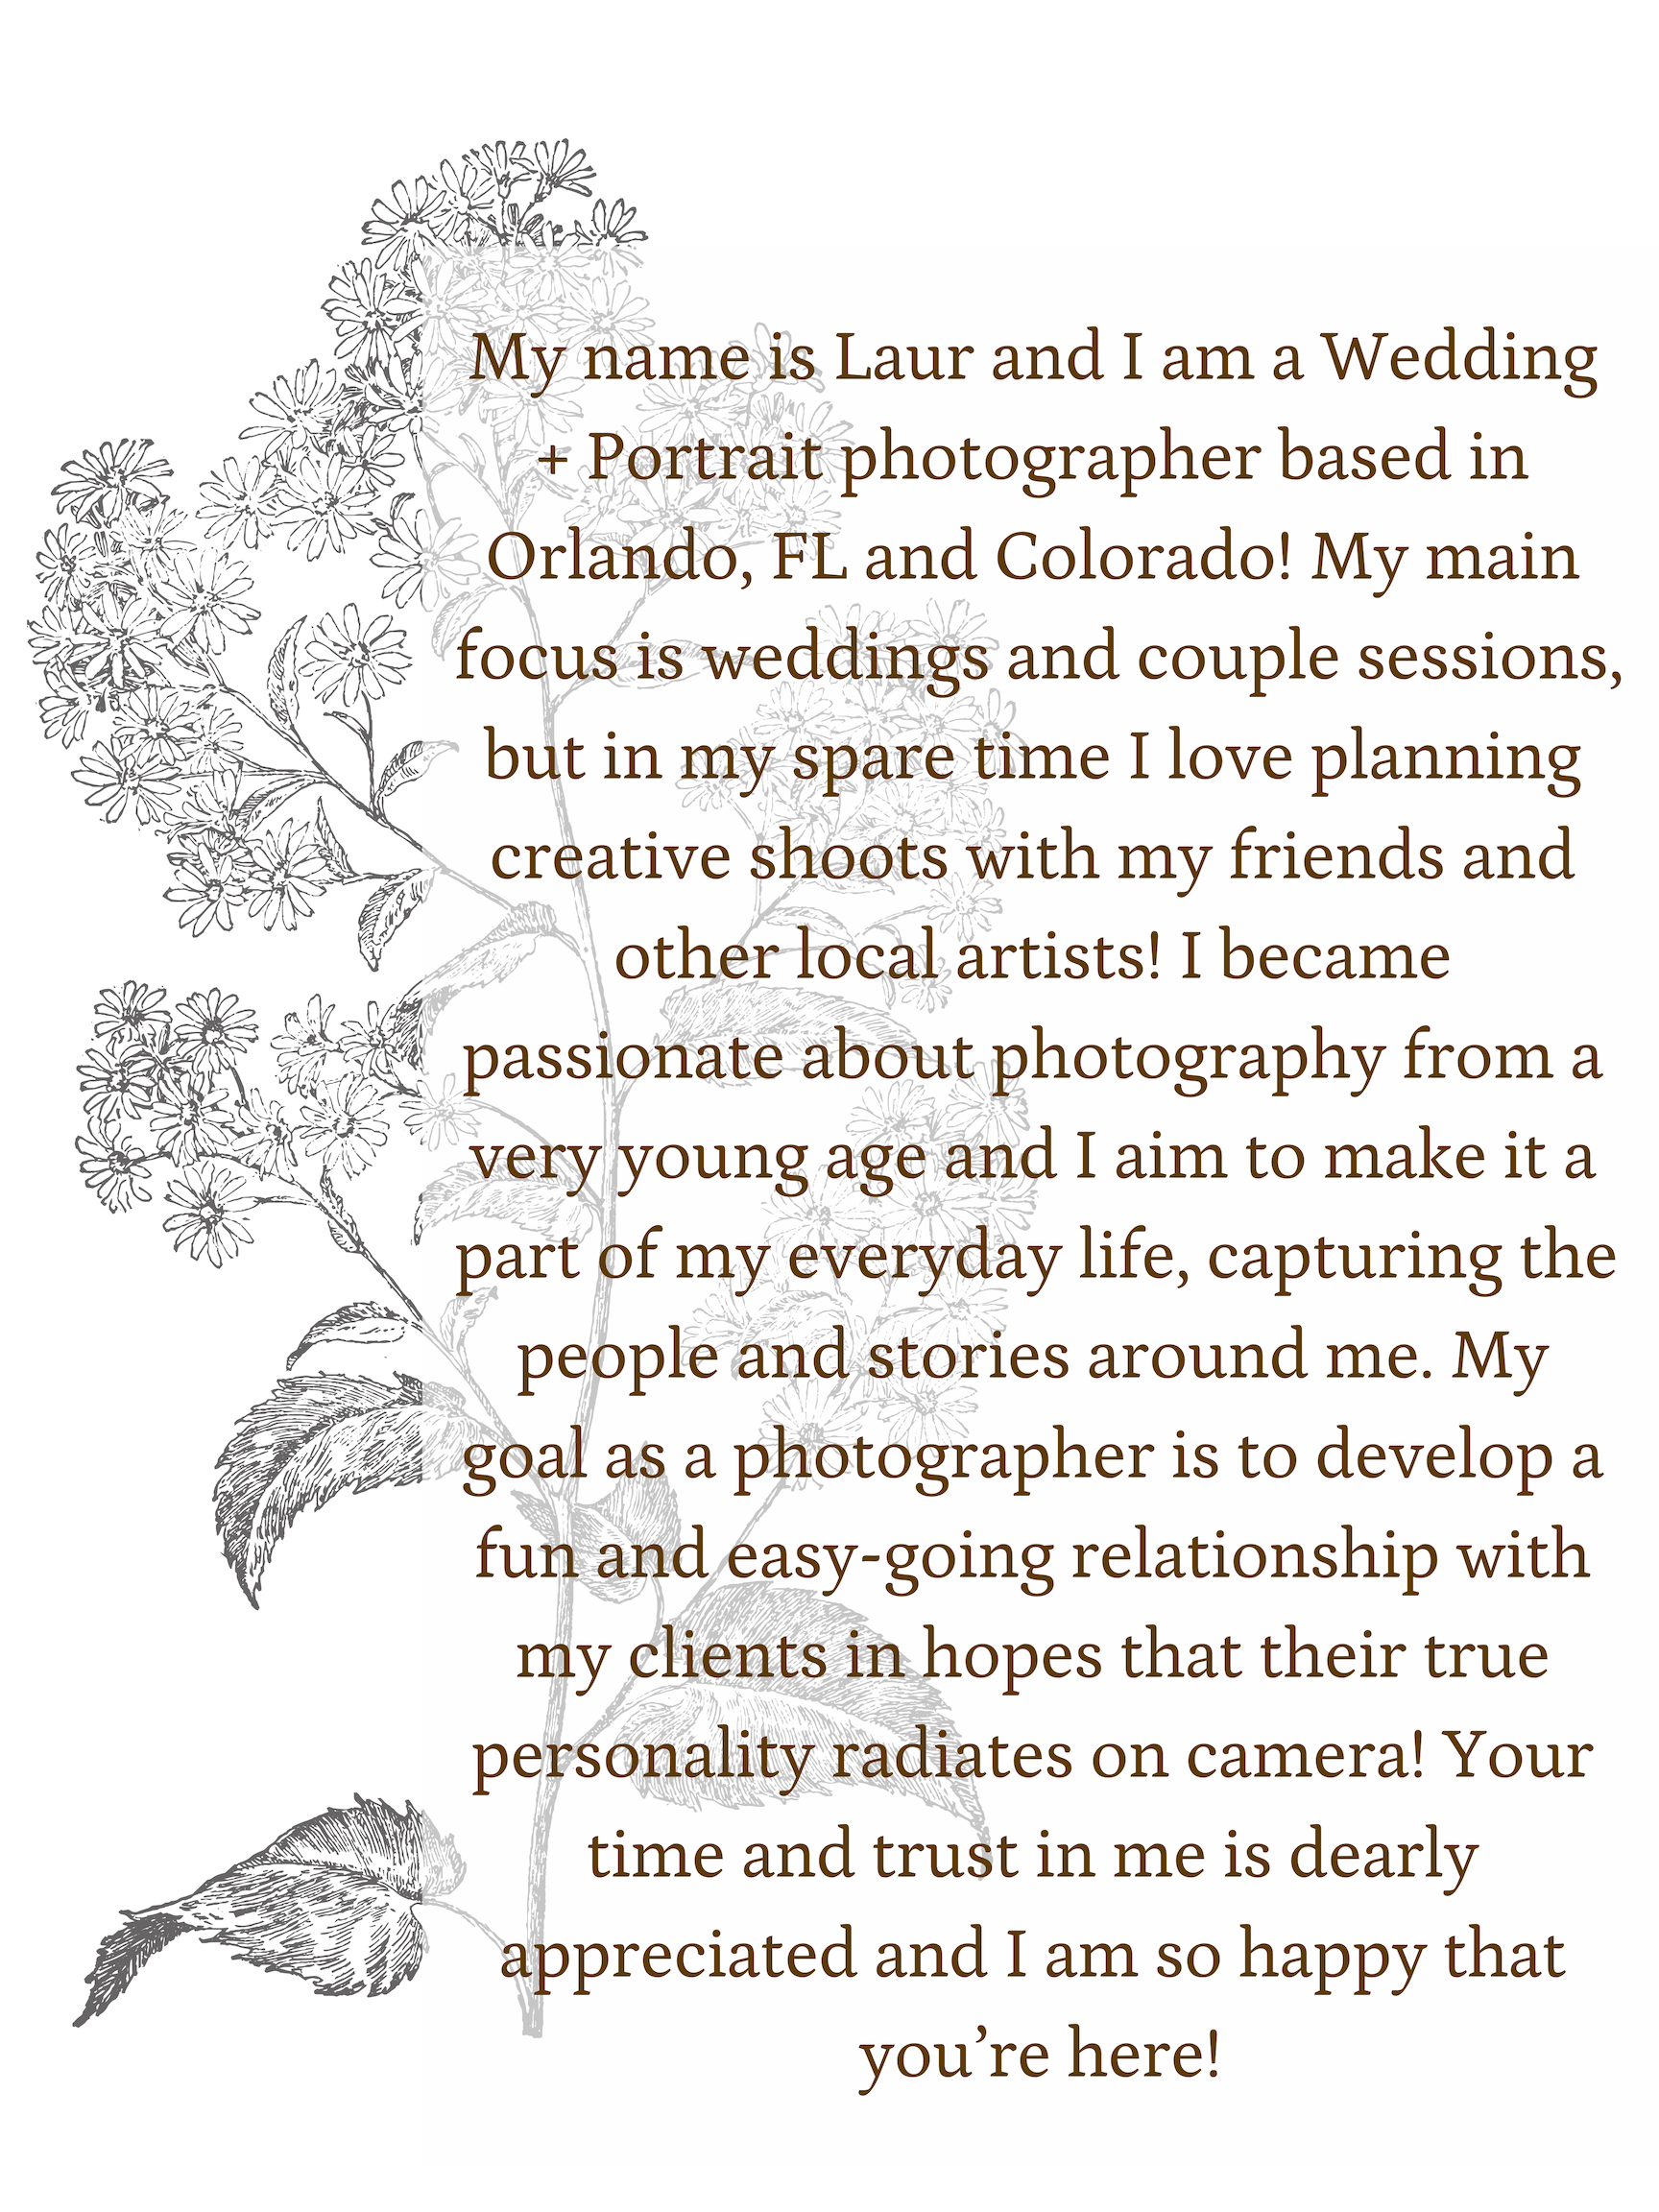 My name is Laur and I am a Wedding + Portrait photographer based in Orlando, FL and Colorado! My main focus is weddings and couple sessions, but in my spare time I love planning creative shoots with my friends and ot (1).png